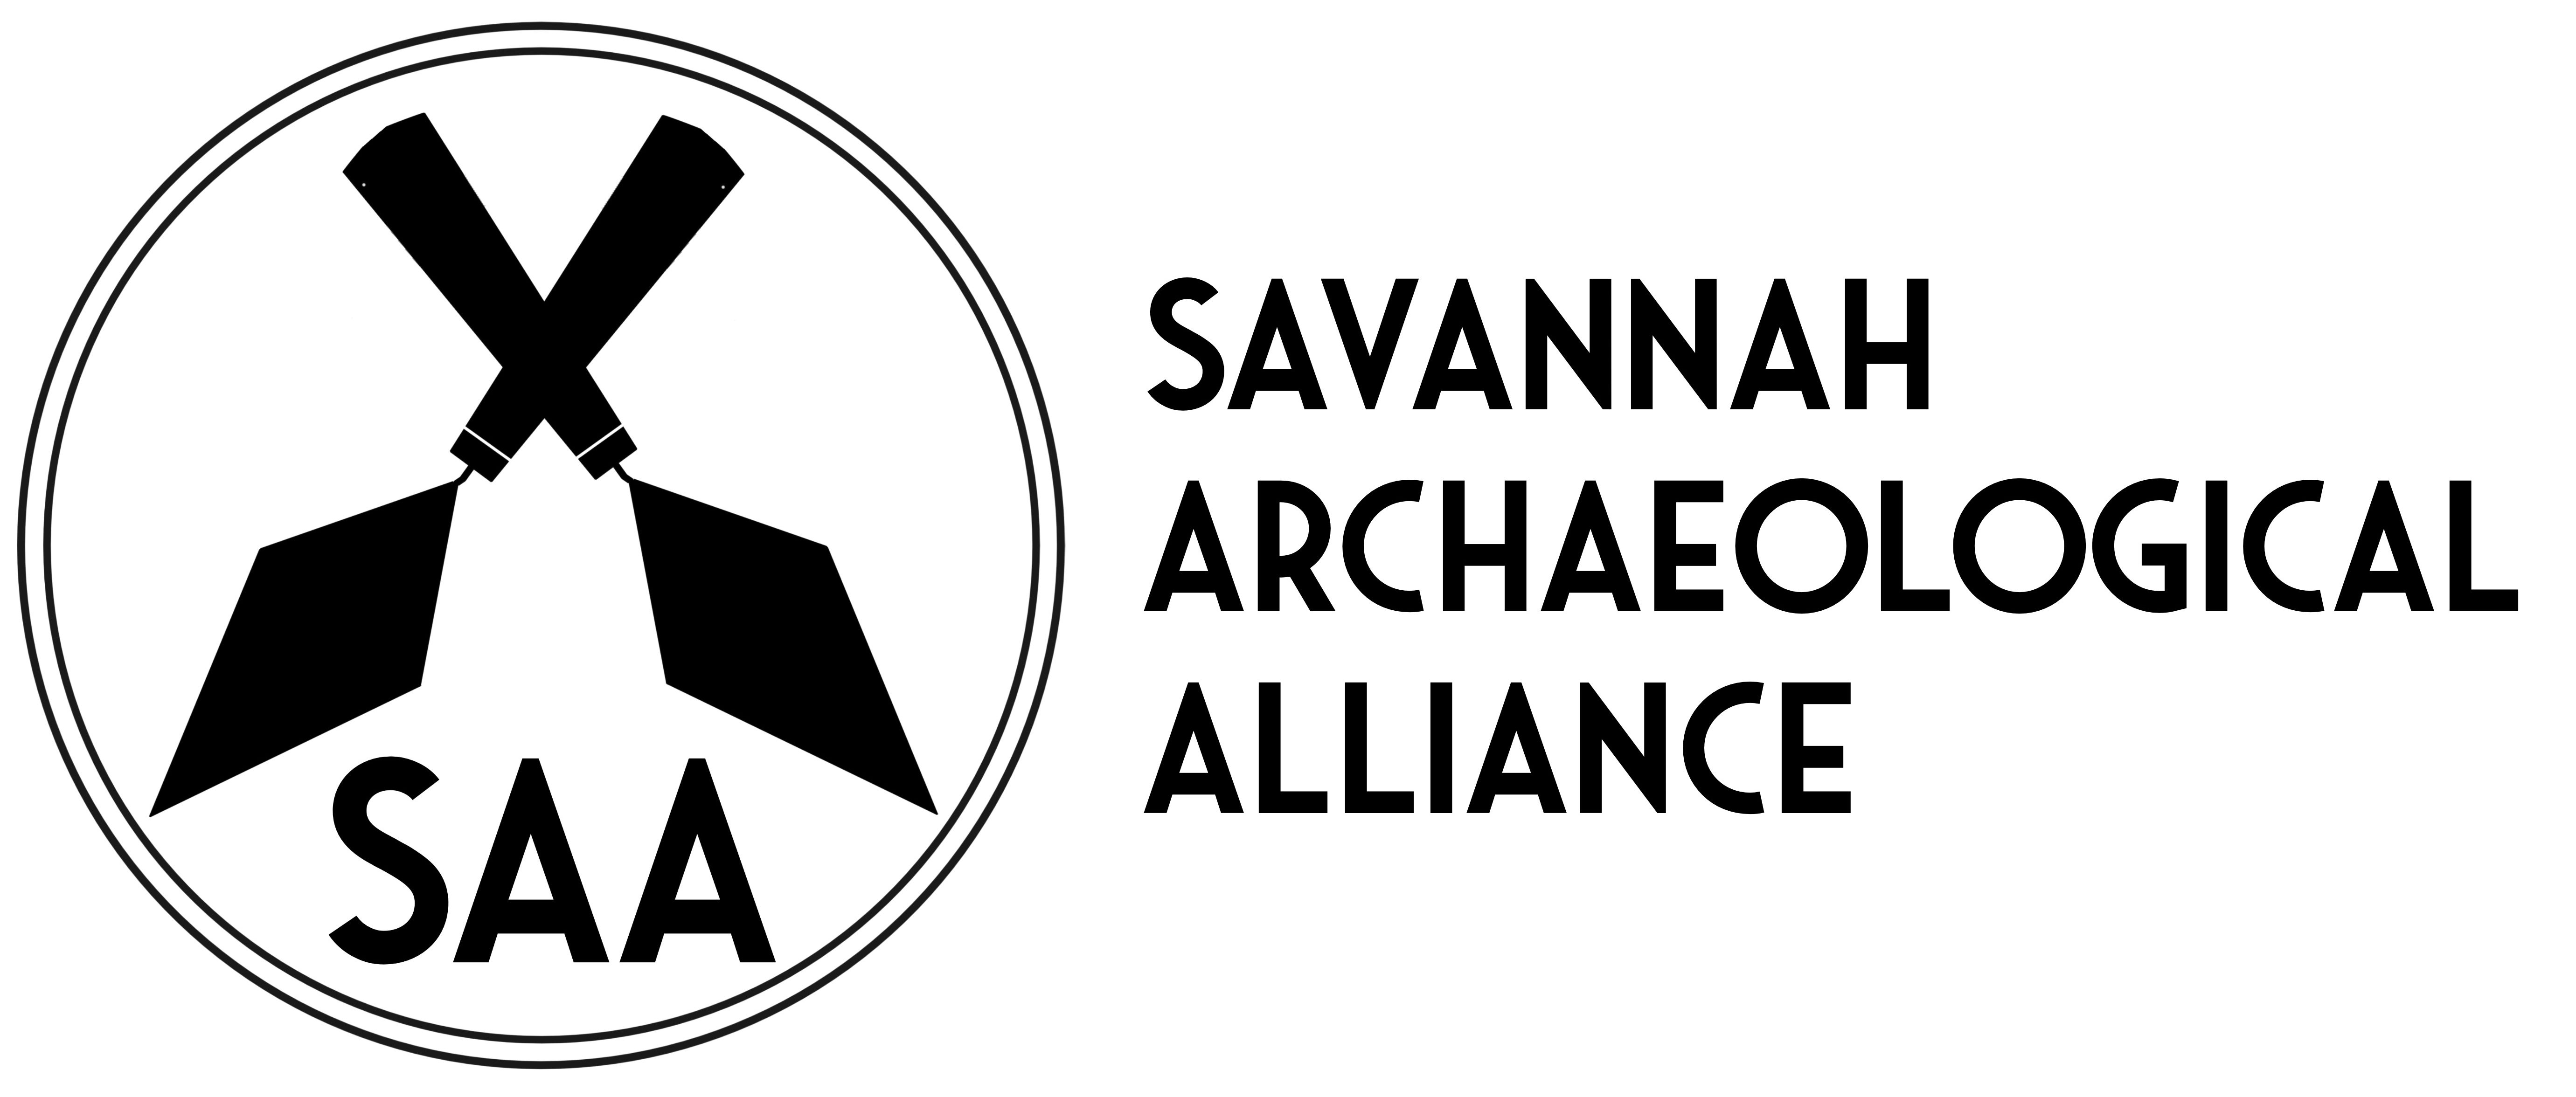 Savannah Archaeological Alliance